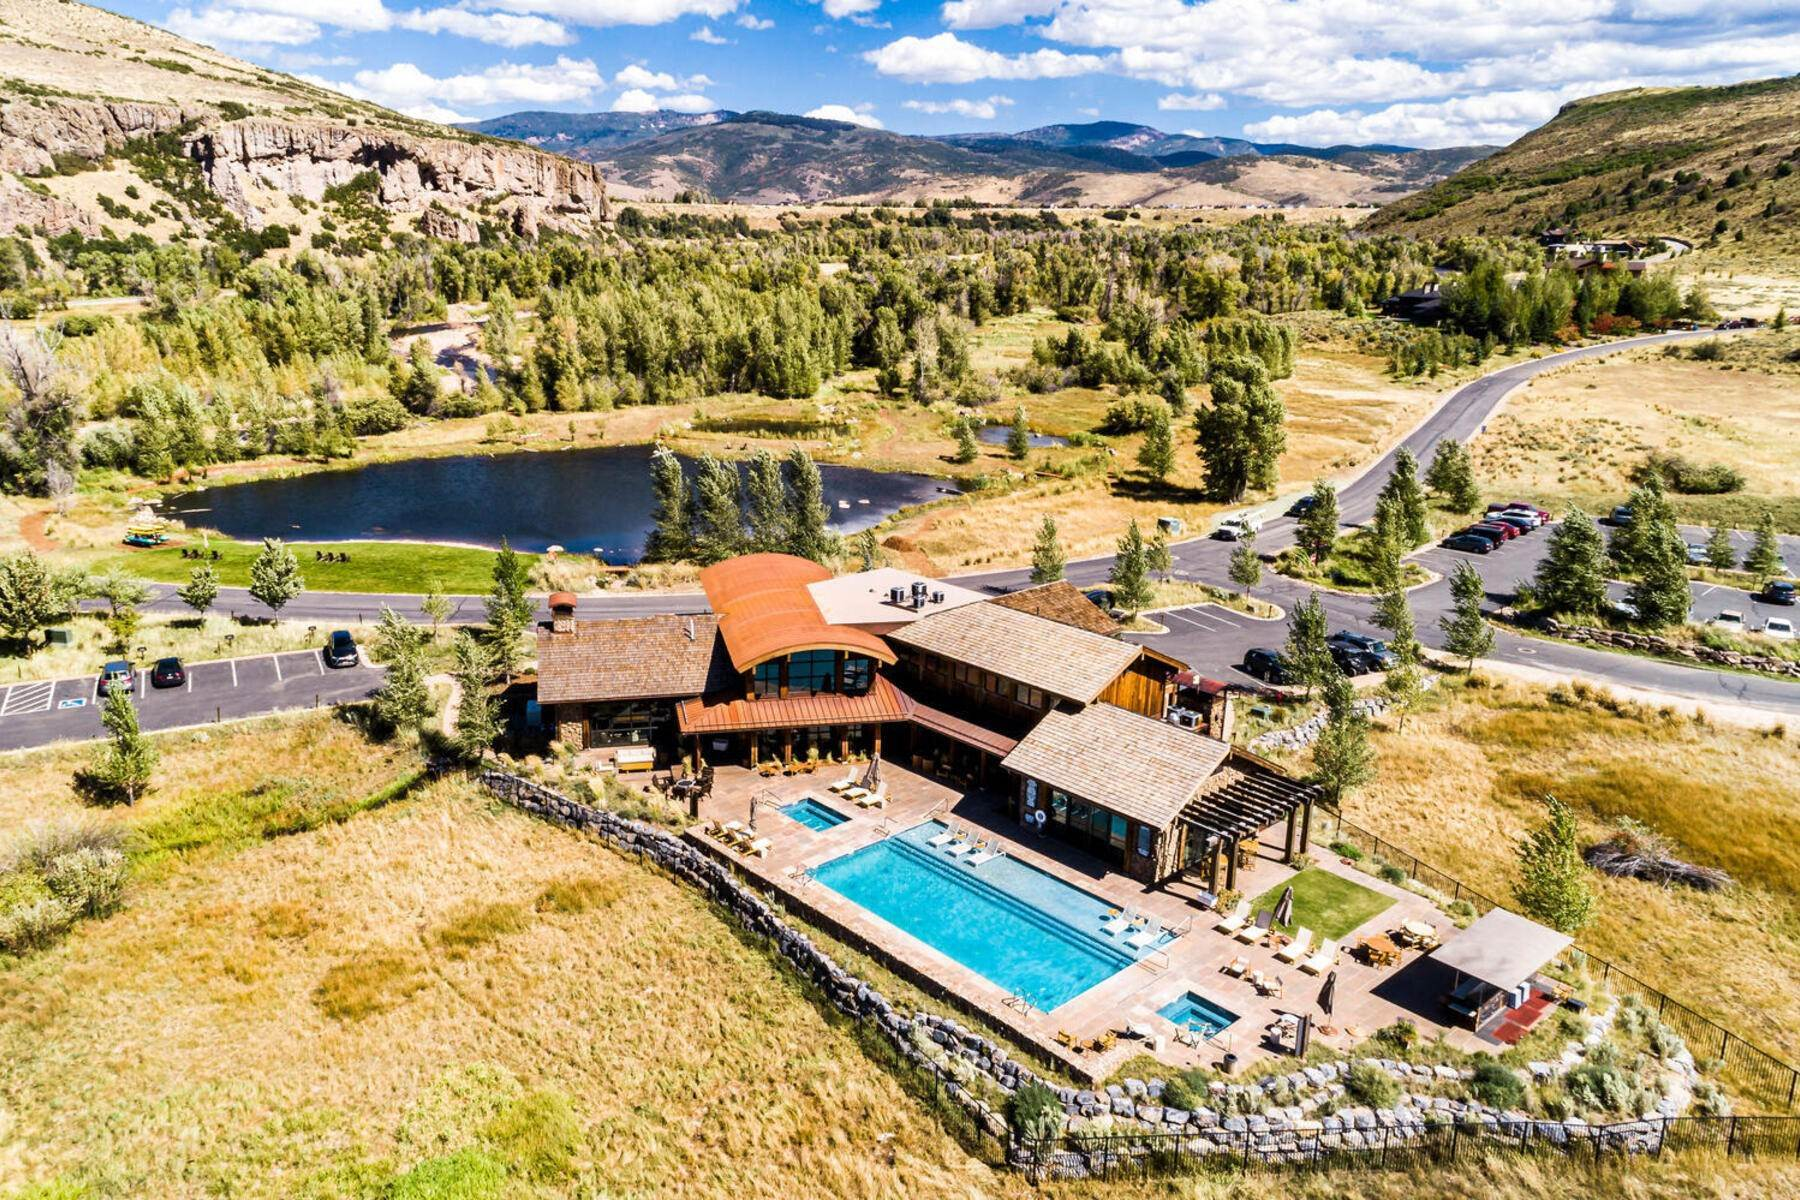 16. fractional ownership prop for Sale at 1/8 Fractional Ownership Opportunity In Brand New Kingfisher Cabin 7615 E Stardust Court #319E, 5.13 Heber City, Utah 84032 United States